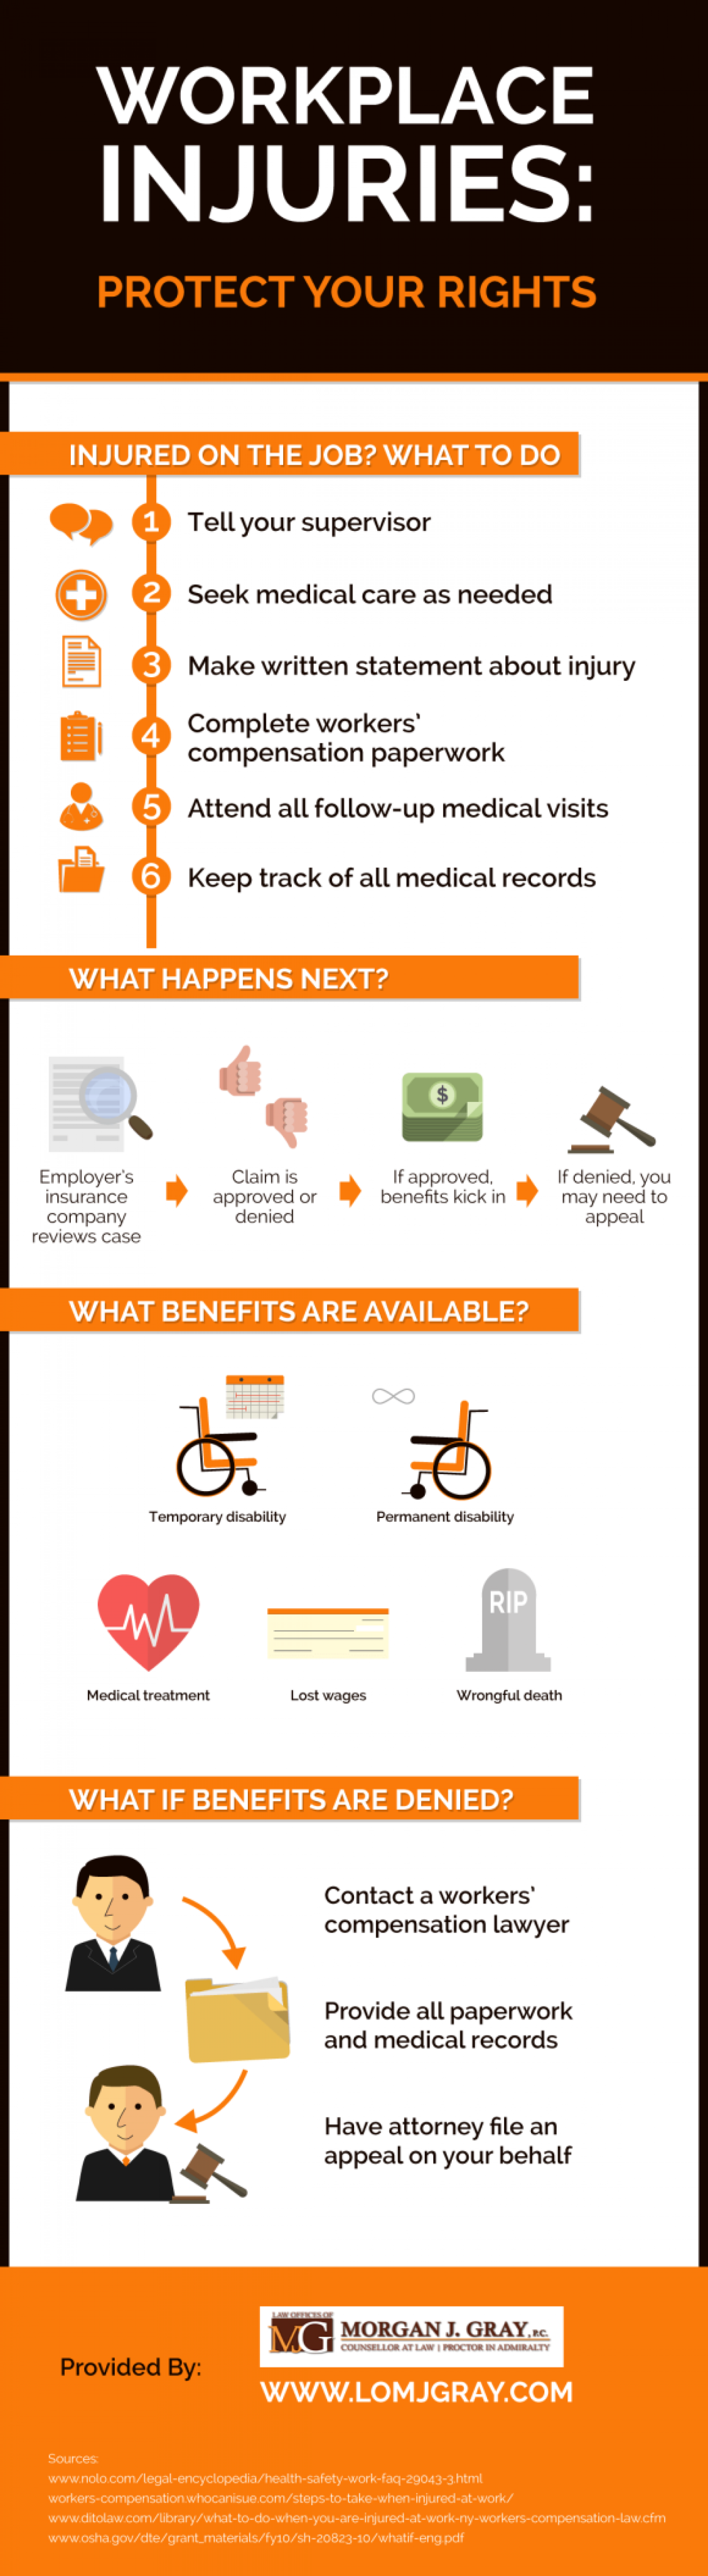 Workplace Injuries: Protect Your Rights Infographic